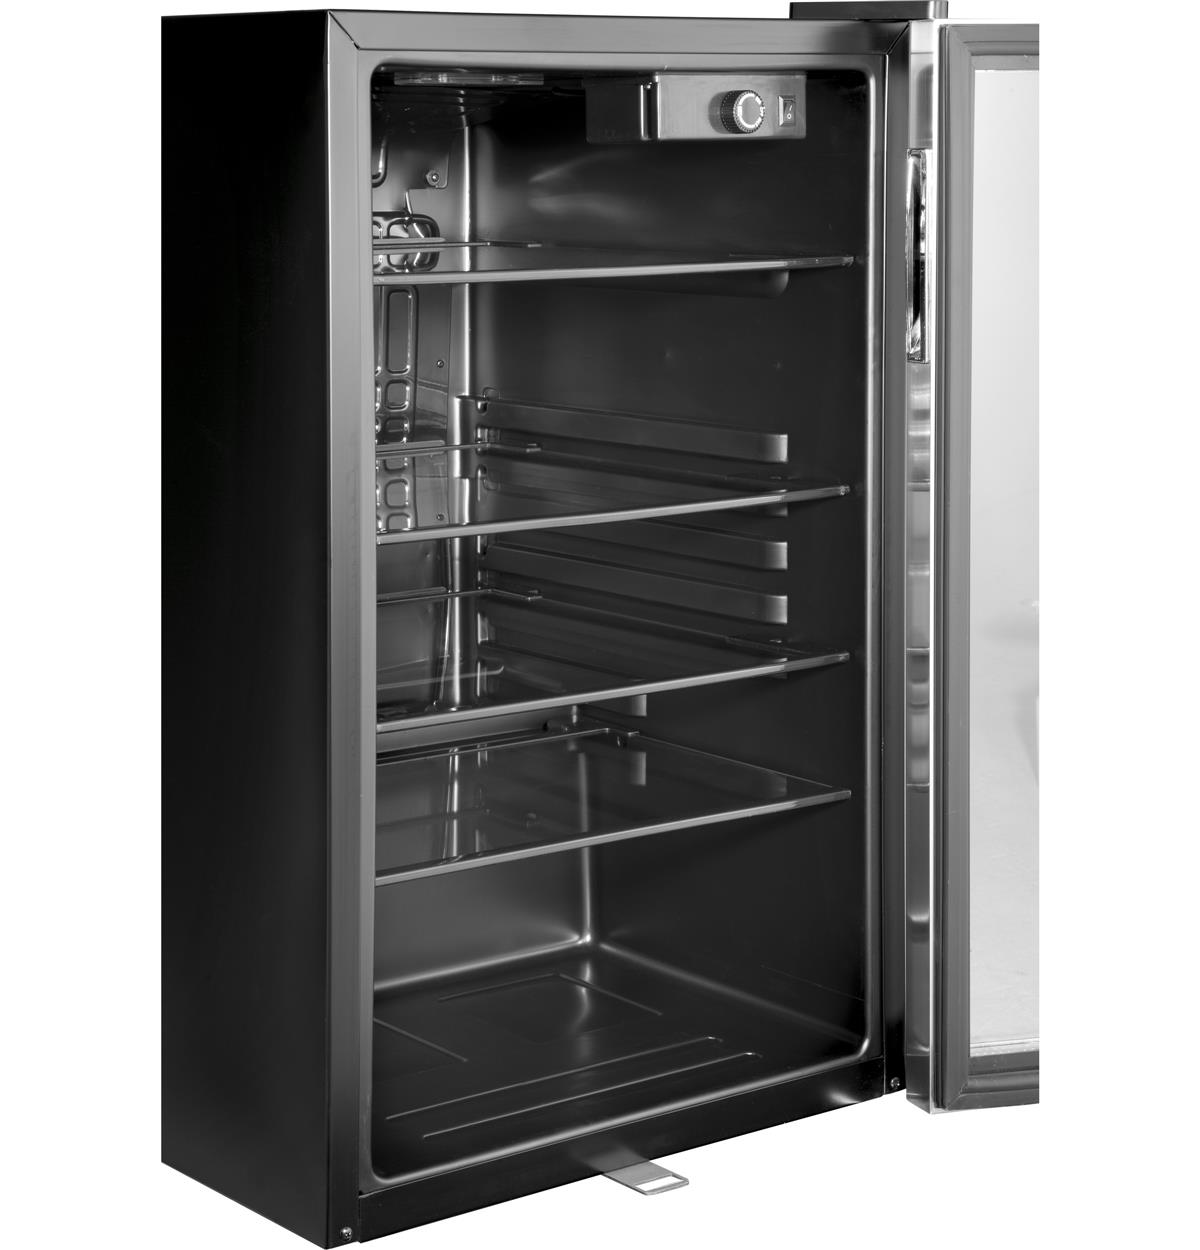 Stainless Wine Reserves & Beverage Centers HEBF100BXS Un-installed/free-standing